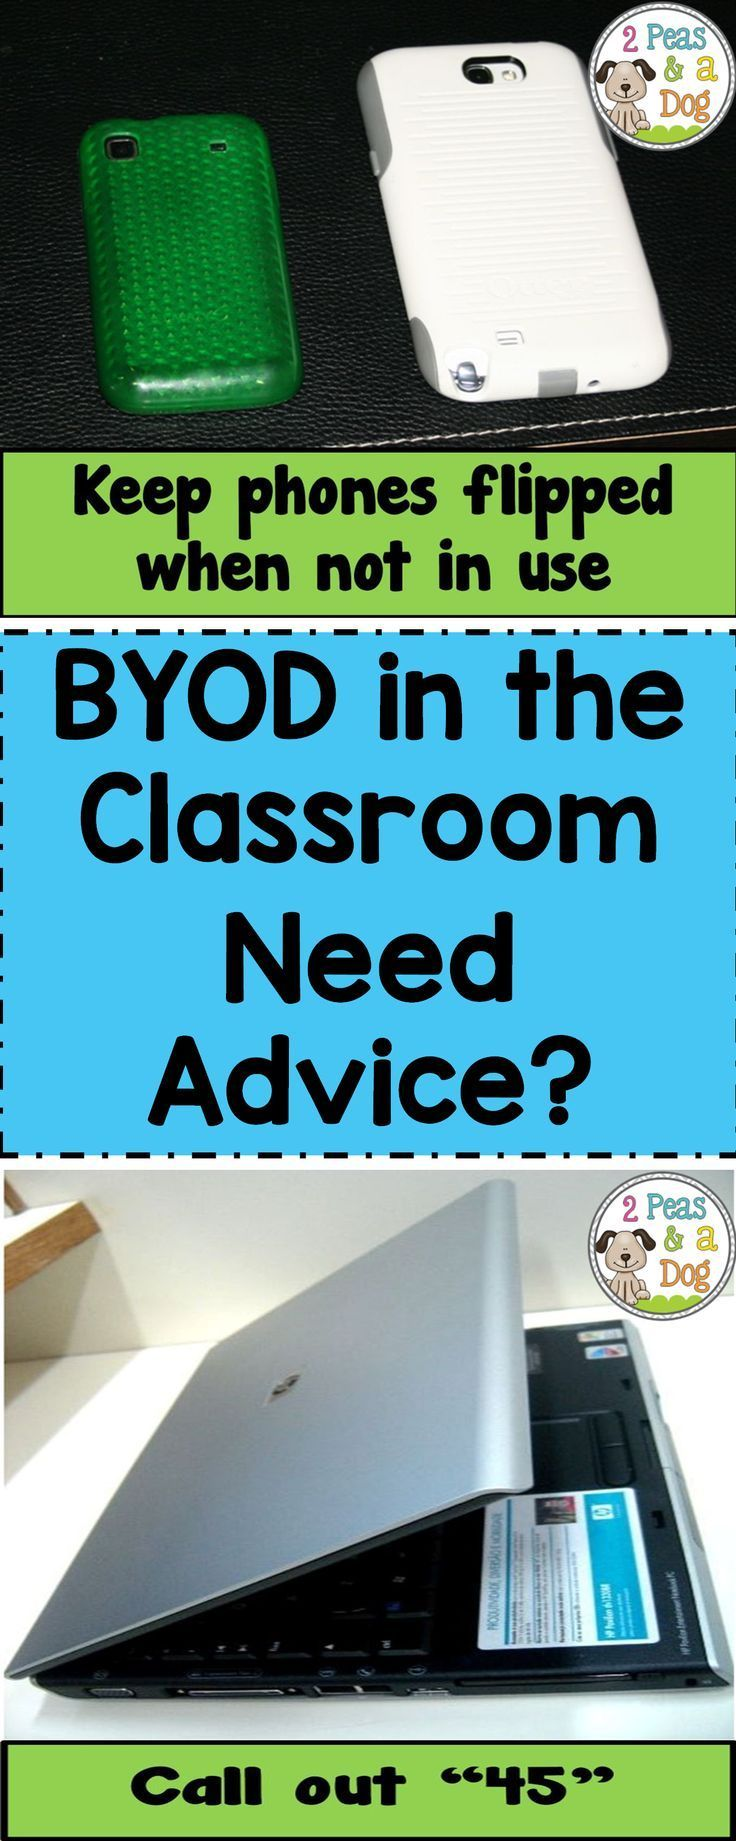 Bring Your Own Device (BYOD) classrooms are a great learning tool. Learn some quick strategies for making BYOD work in your classroom from 2 Peas and a Dog.